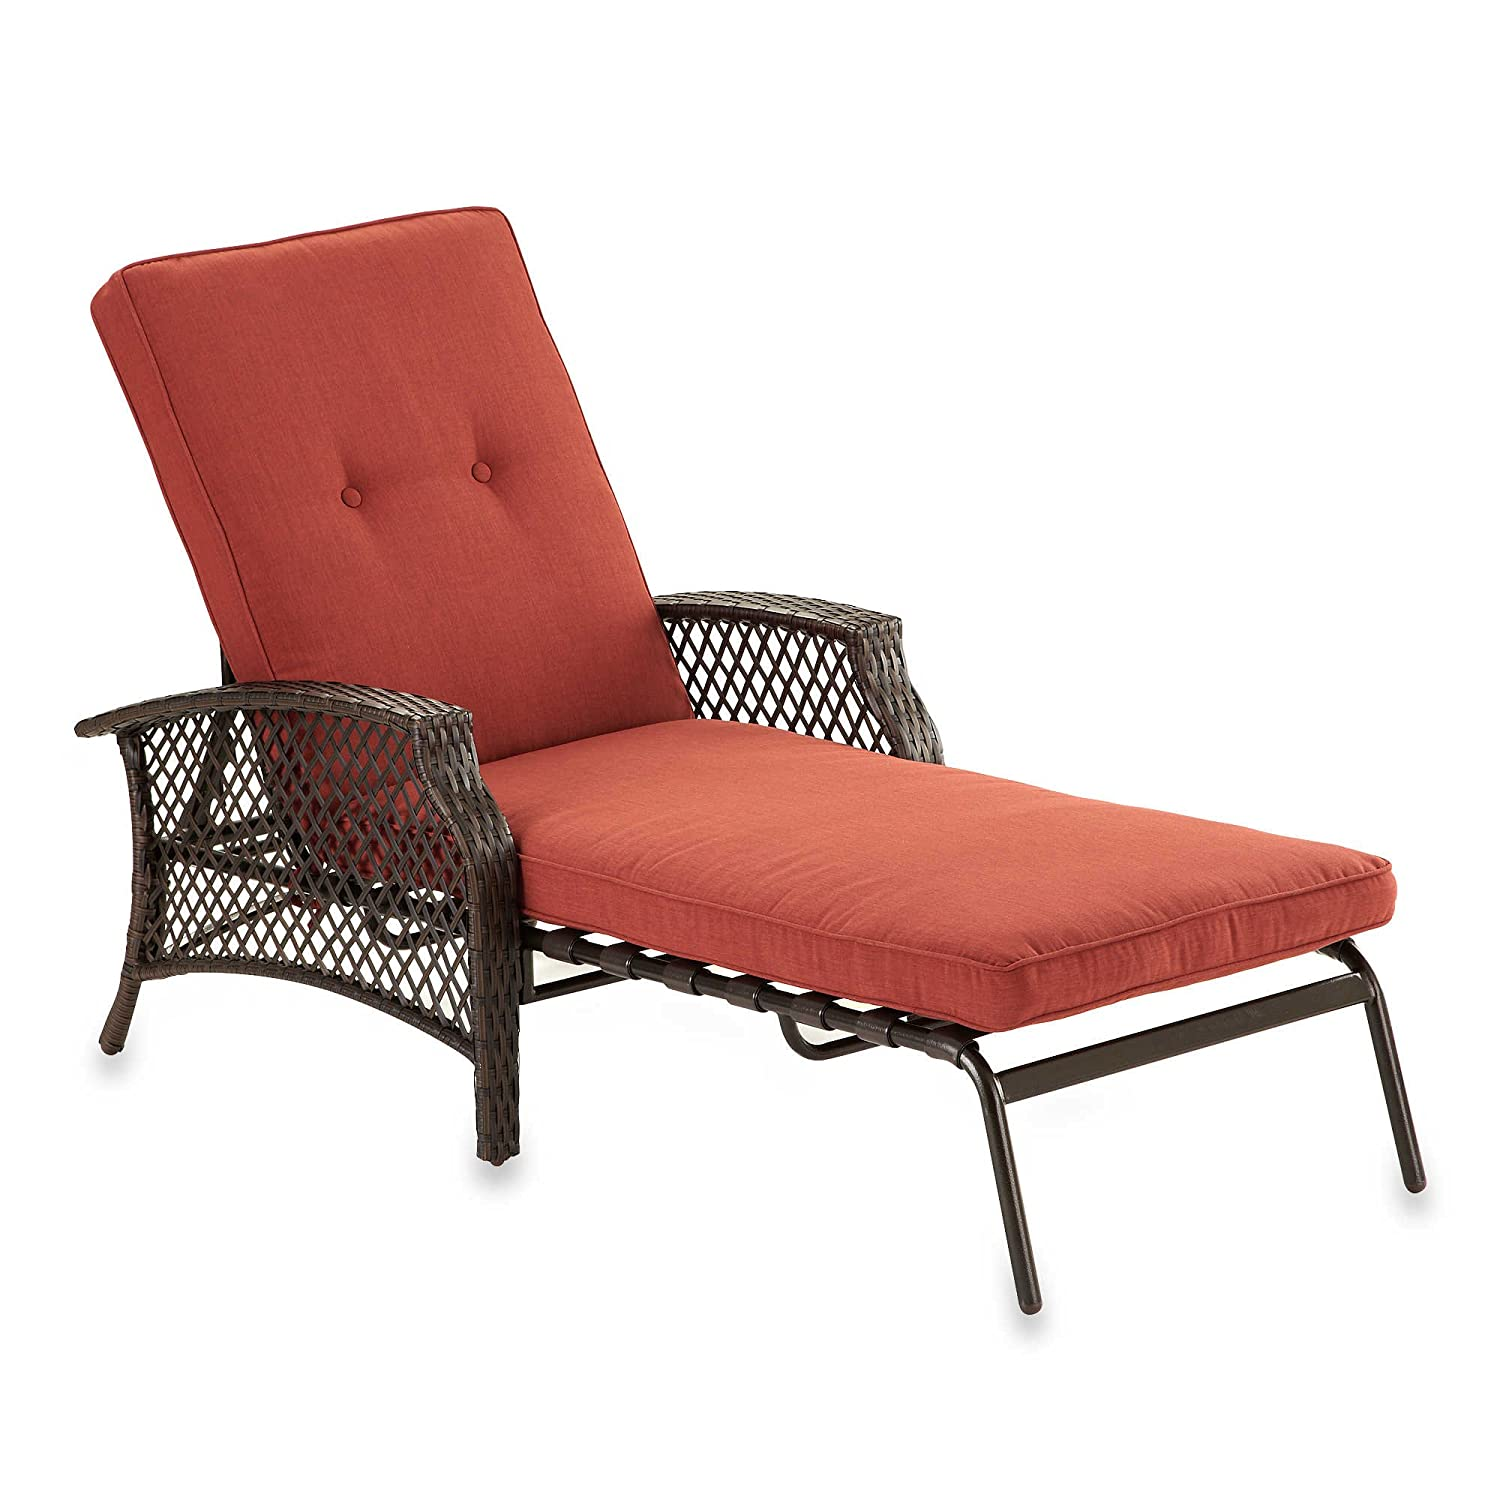 Best of outdoor chaise lounge chair for Best outdoor chaise lounges